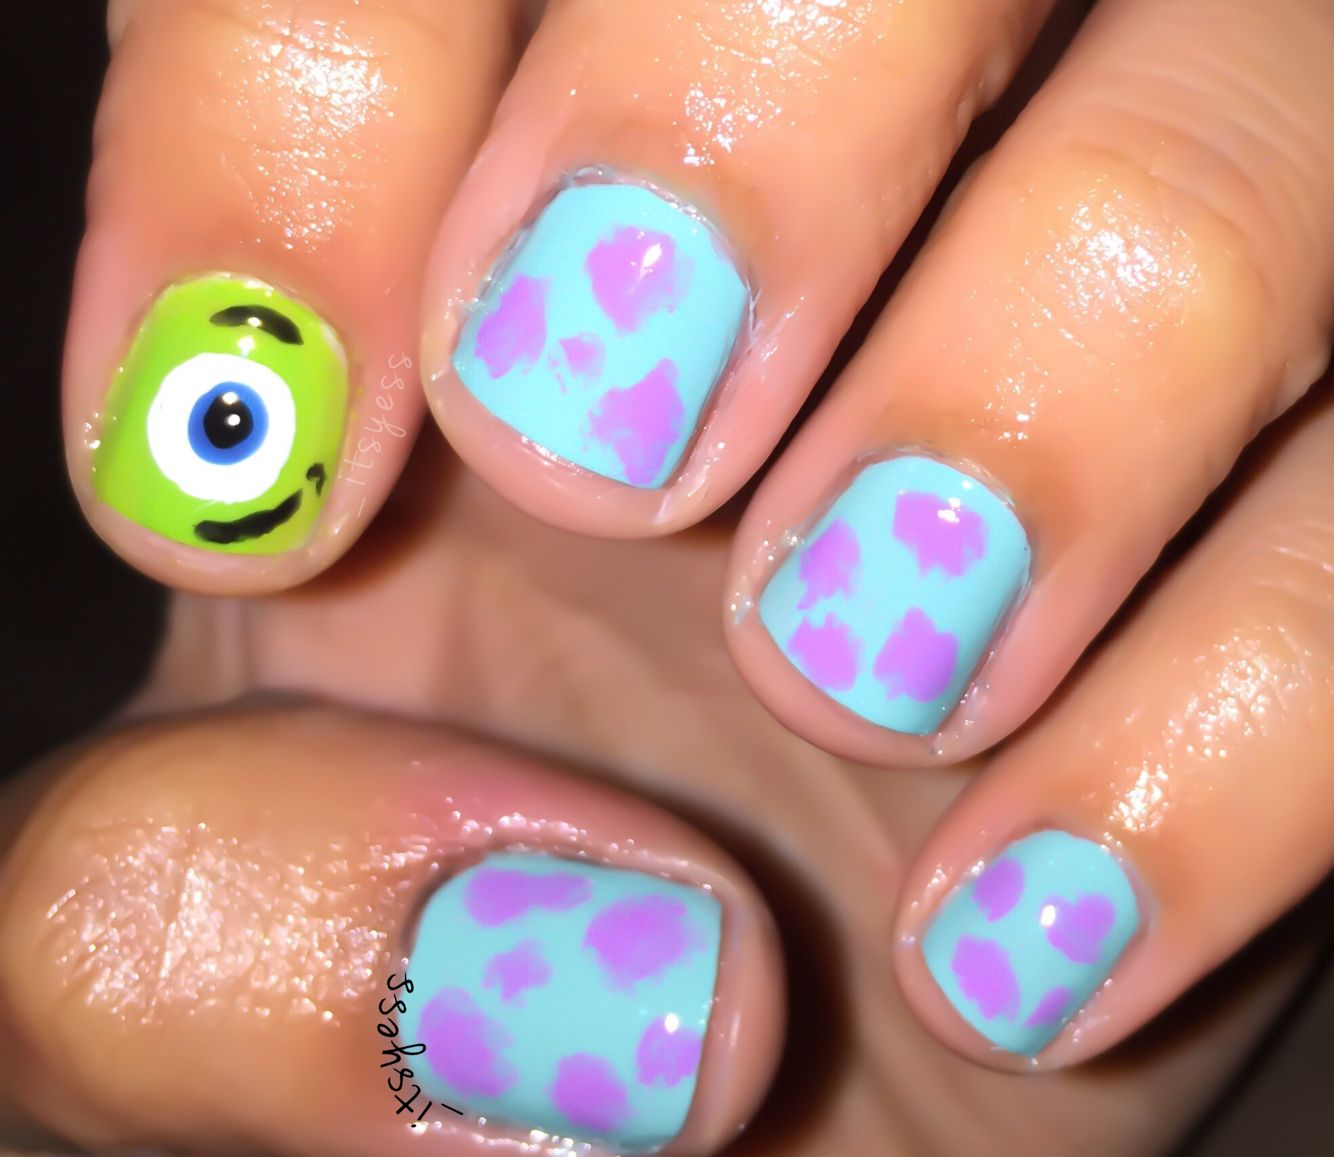 Monsters Inc Nails Mike Wazowski & Sully | Nails by Yess | Pinterest